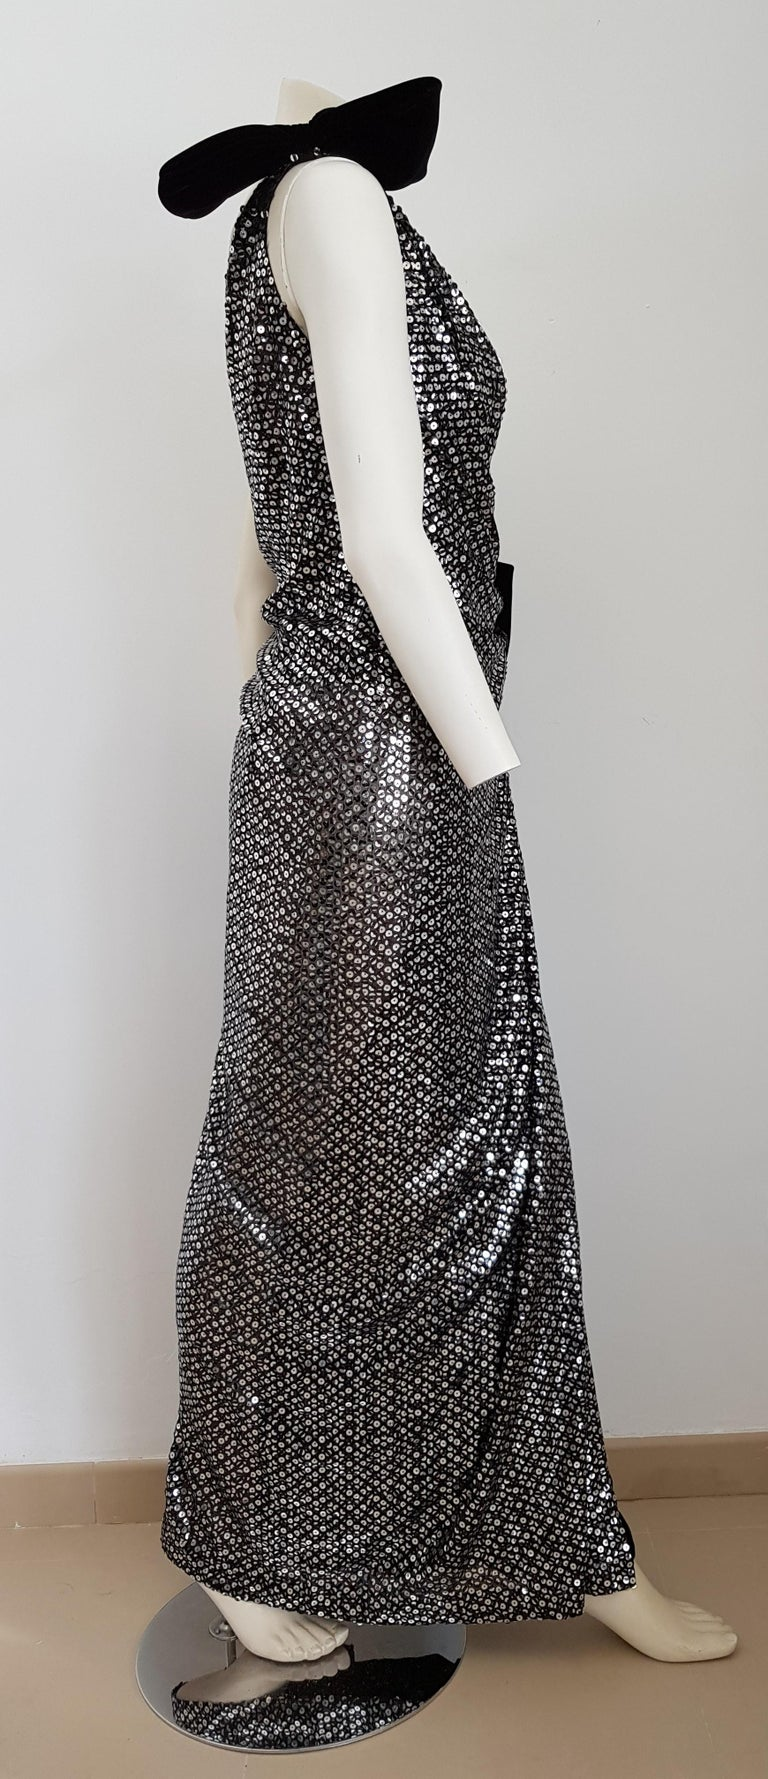 VALENTINO Haute Couture, sequins, silk velvet, black gown dress - Unworn, New For Sale 2